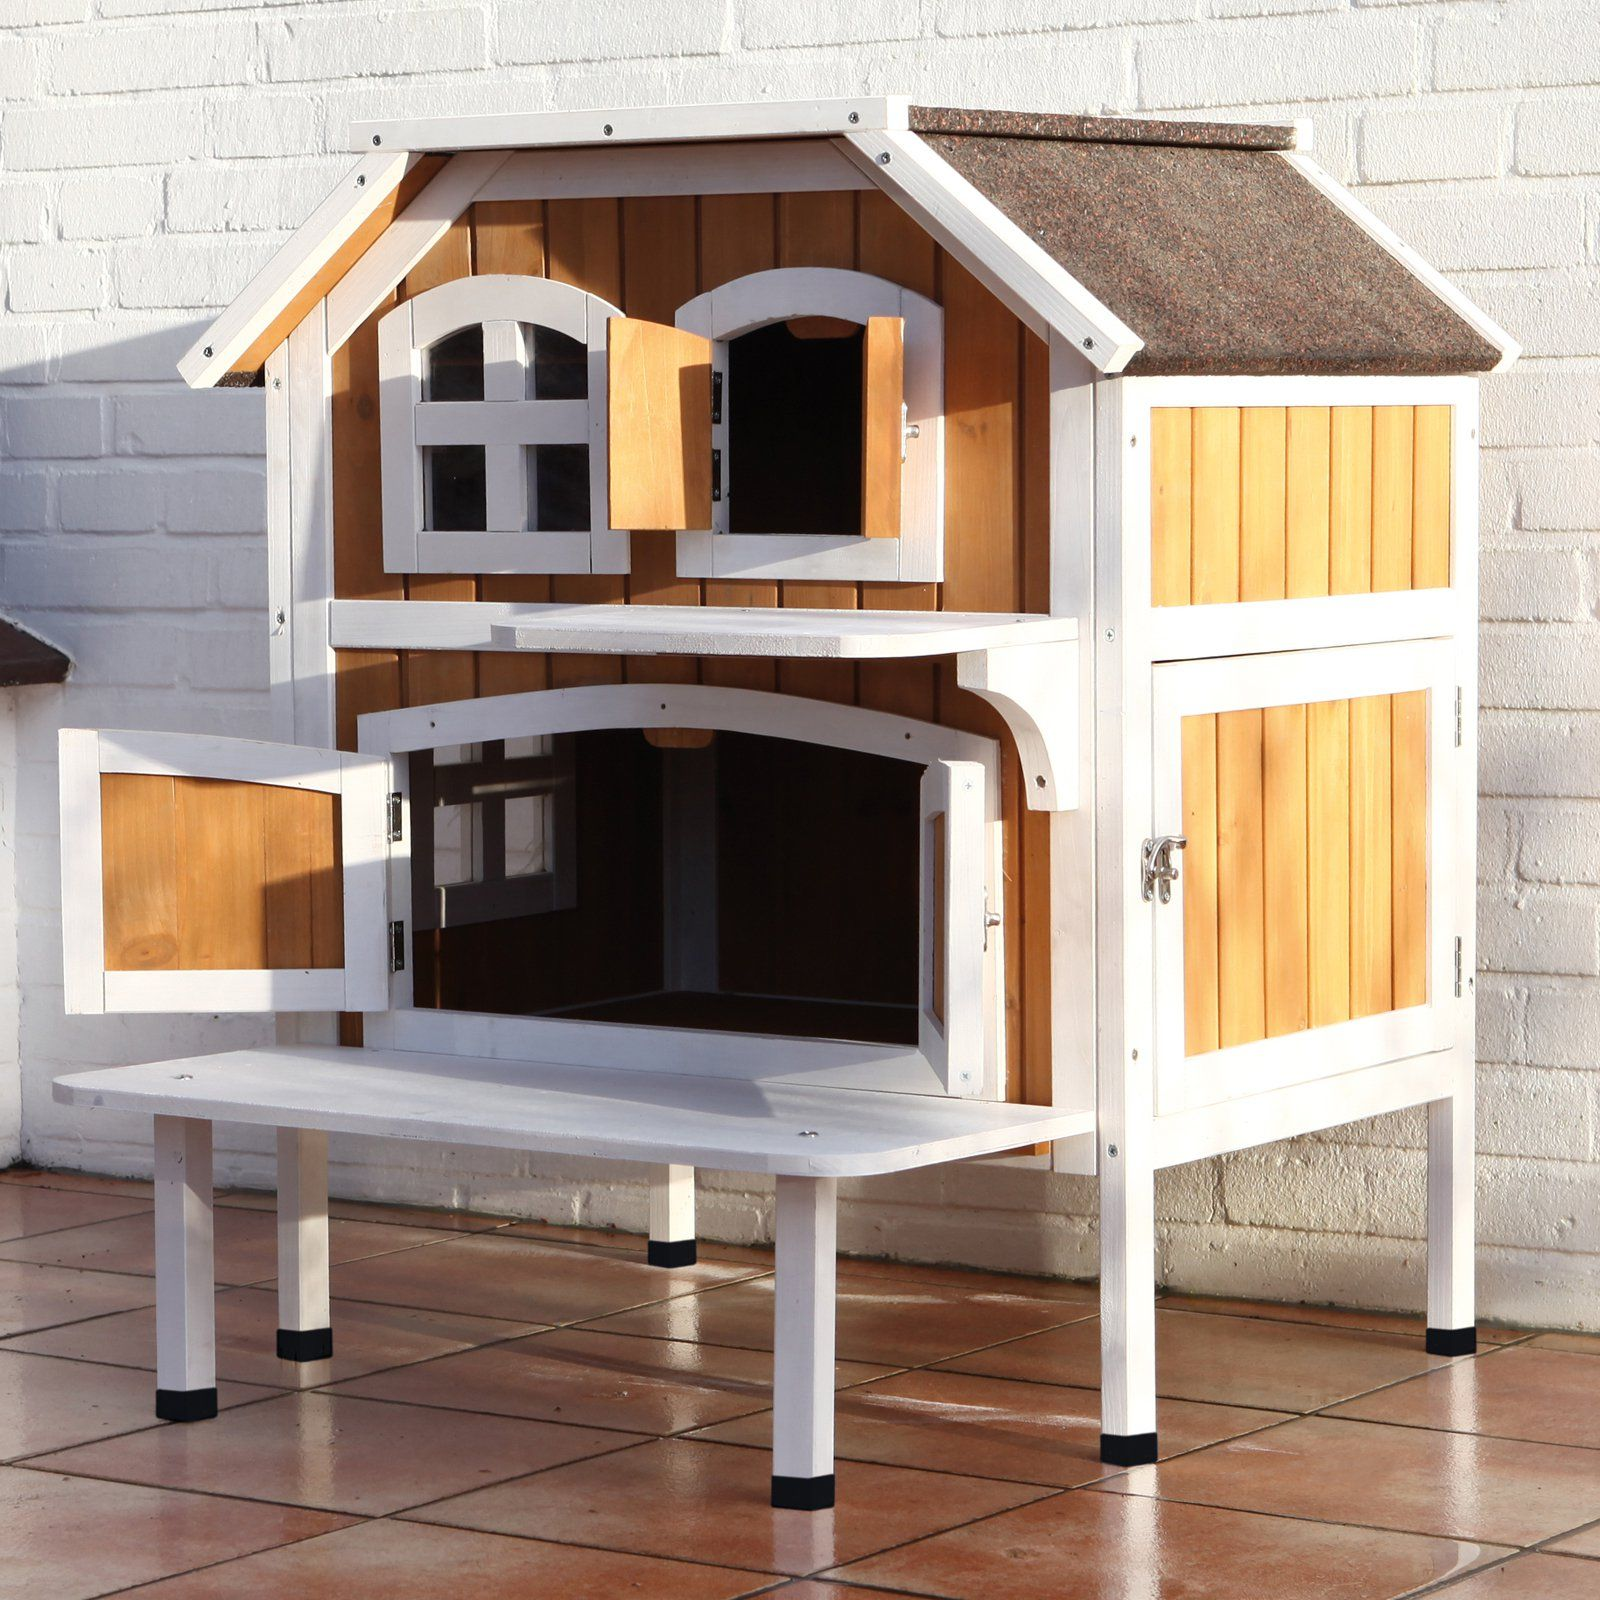 Trixie Pet Products 2 Story Cat Cottage Outdoor Cat House House Cat House